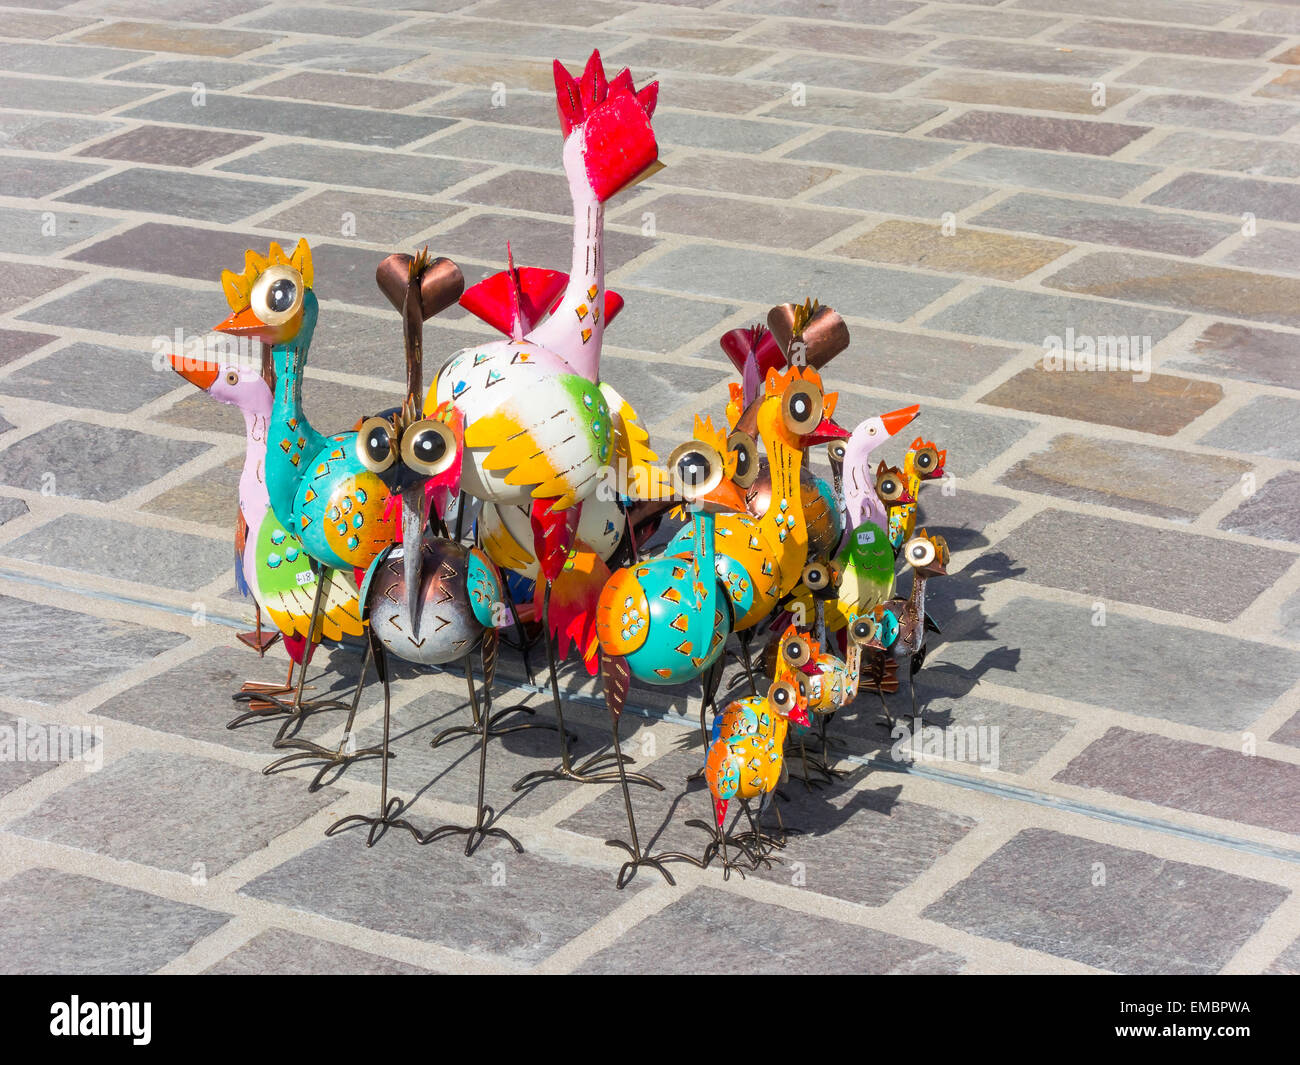 Brightly painted metal bird garden ornaments on sale in a weekly market - Stock Image